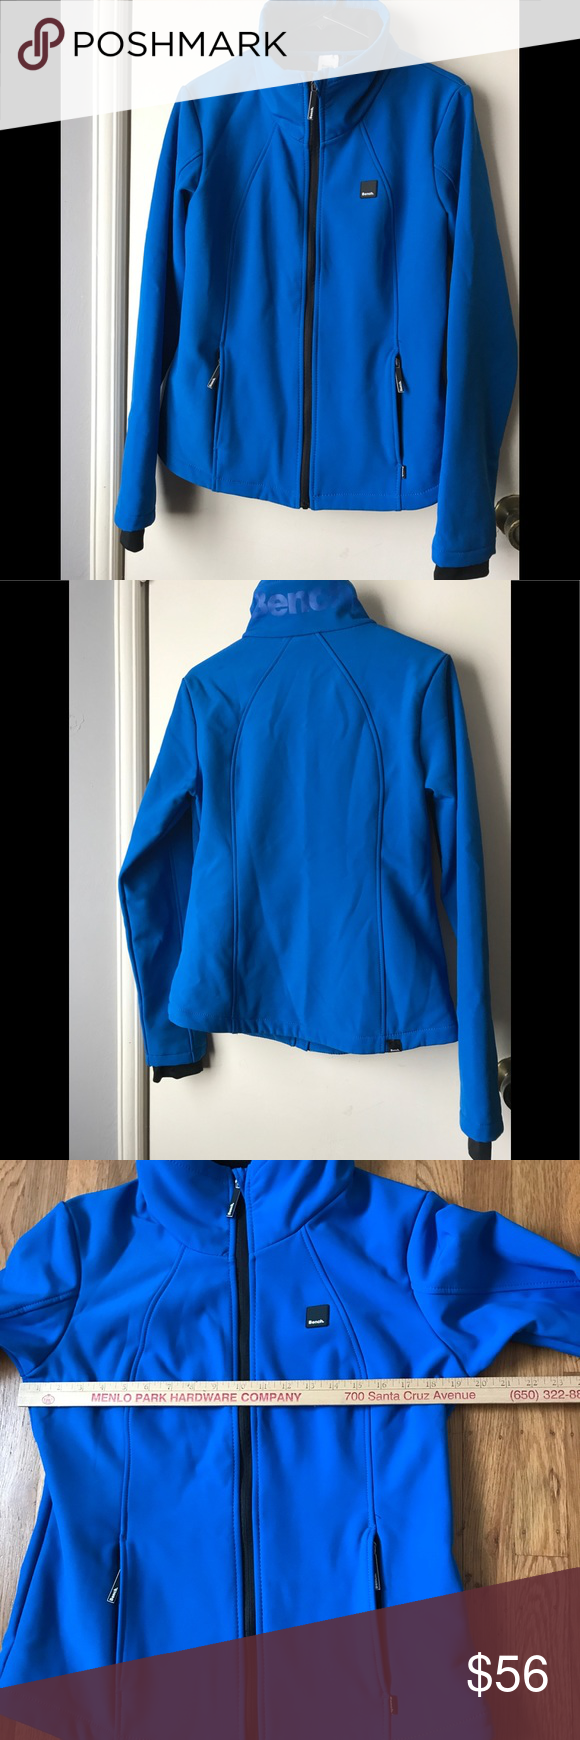 Bench Womens Blue Jacket Size Xl Front Zip Vibrant Blue Women S Bench Front Zip Jacket In An Xl Good Gently Used Condition No Col Bench Jackets Jackets Women